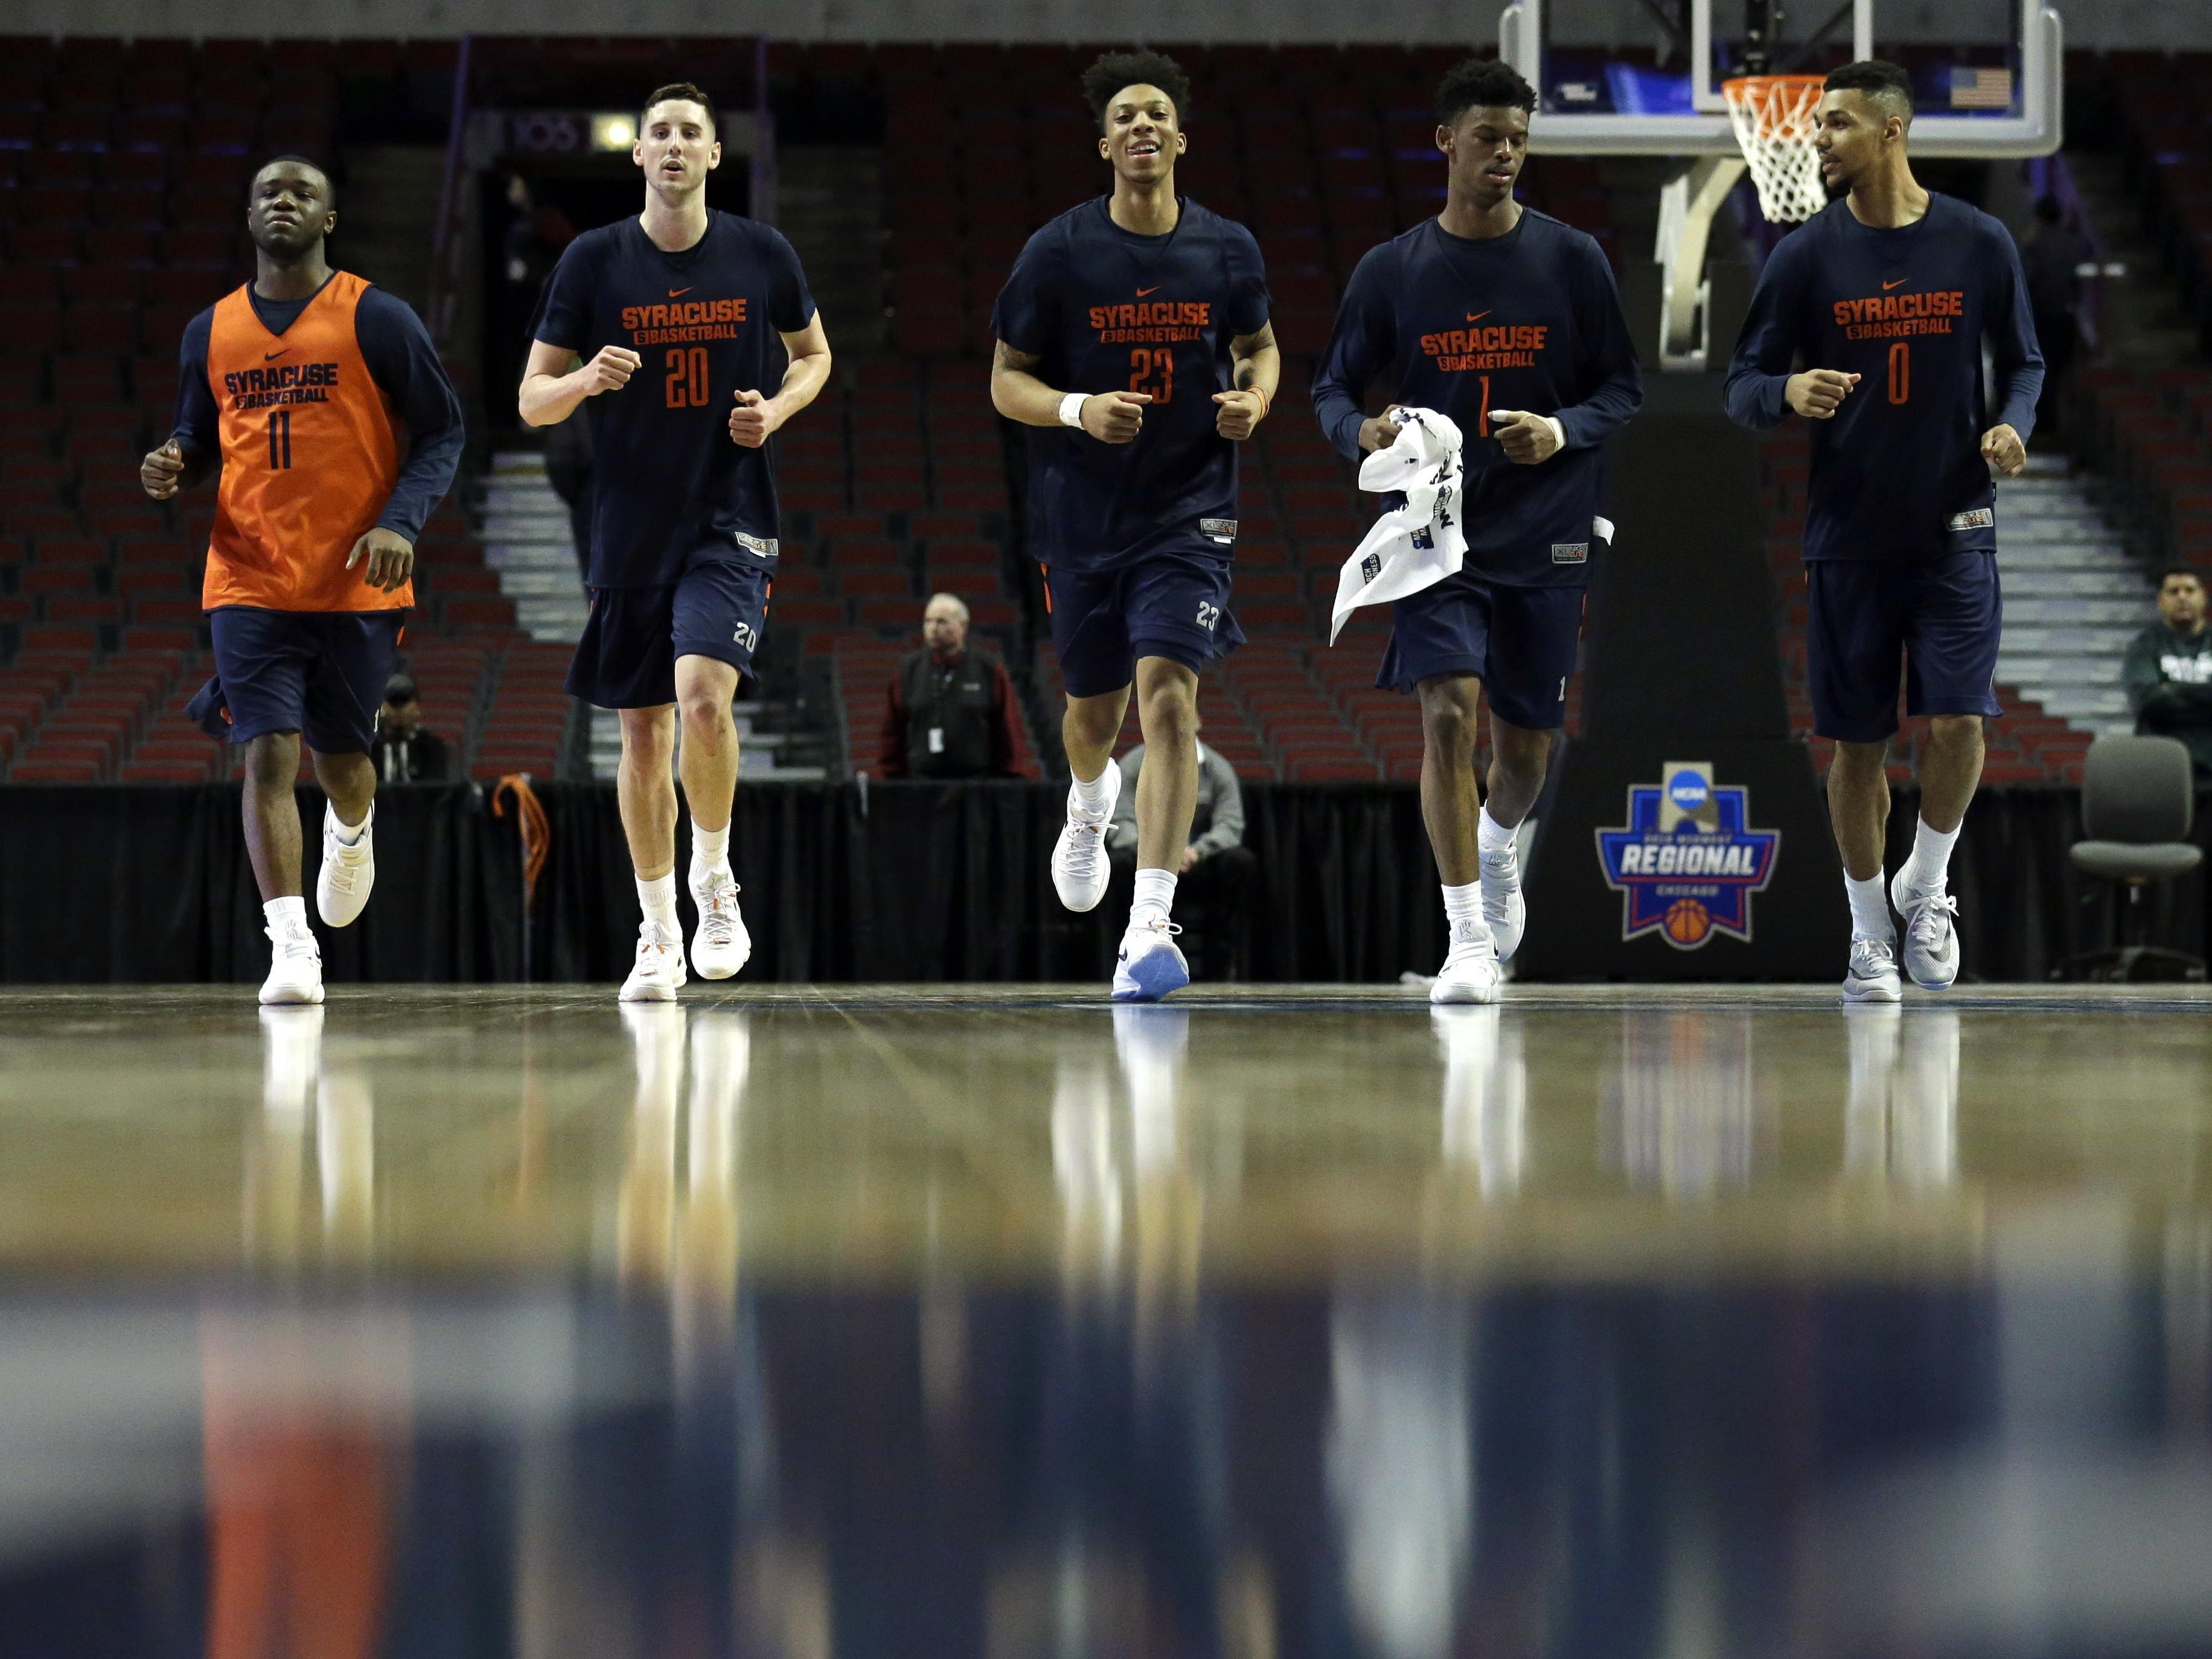 Syracuse's Adrian Autry (11), Tyler Lydon (20), Malachi Richardson (23), Franklin Howard (1), and Michael Gbinije (0) warm up during college basketball practice, Thursday, March 24, 2016, in Chicago. Syracuse plays against Gonzaga in a regional semifinal game in the NCAA Tournament on Friday. (AP Photo/Nam Y. Huh)